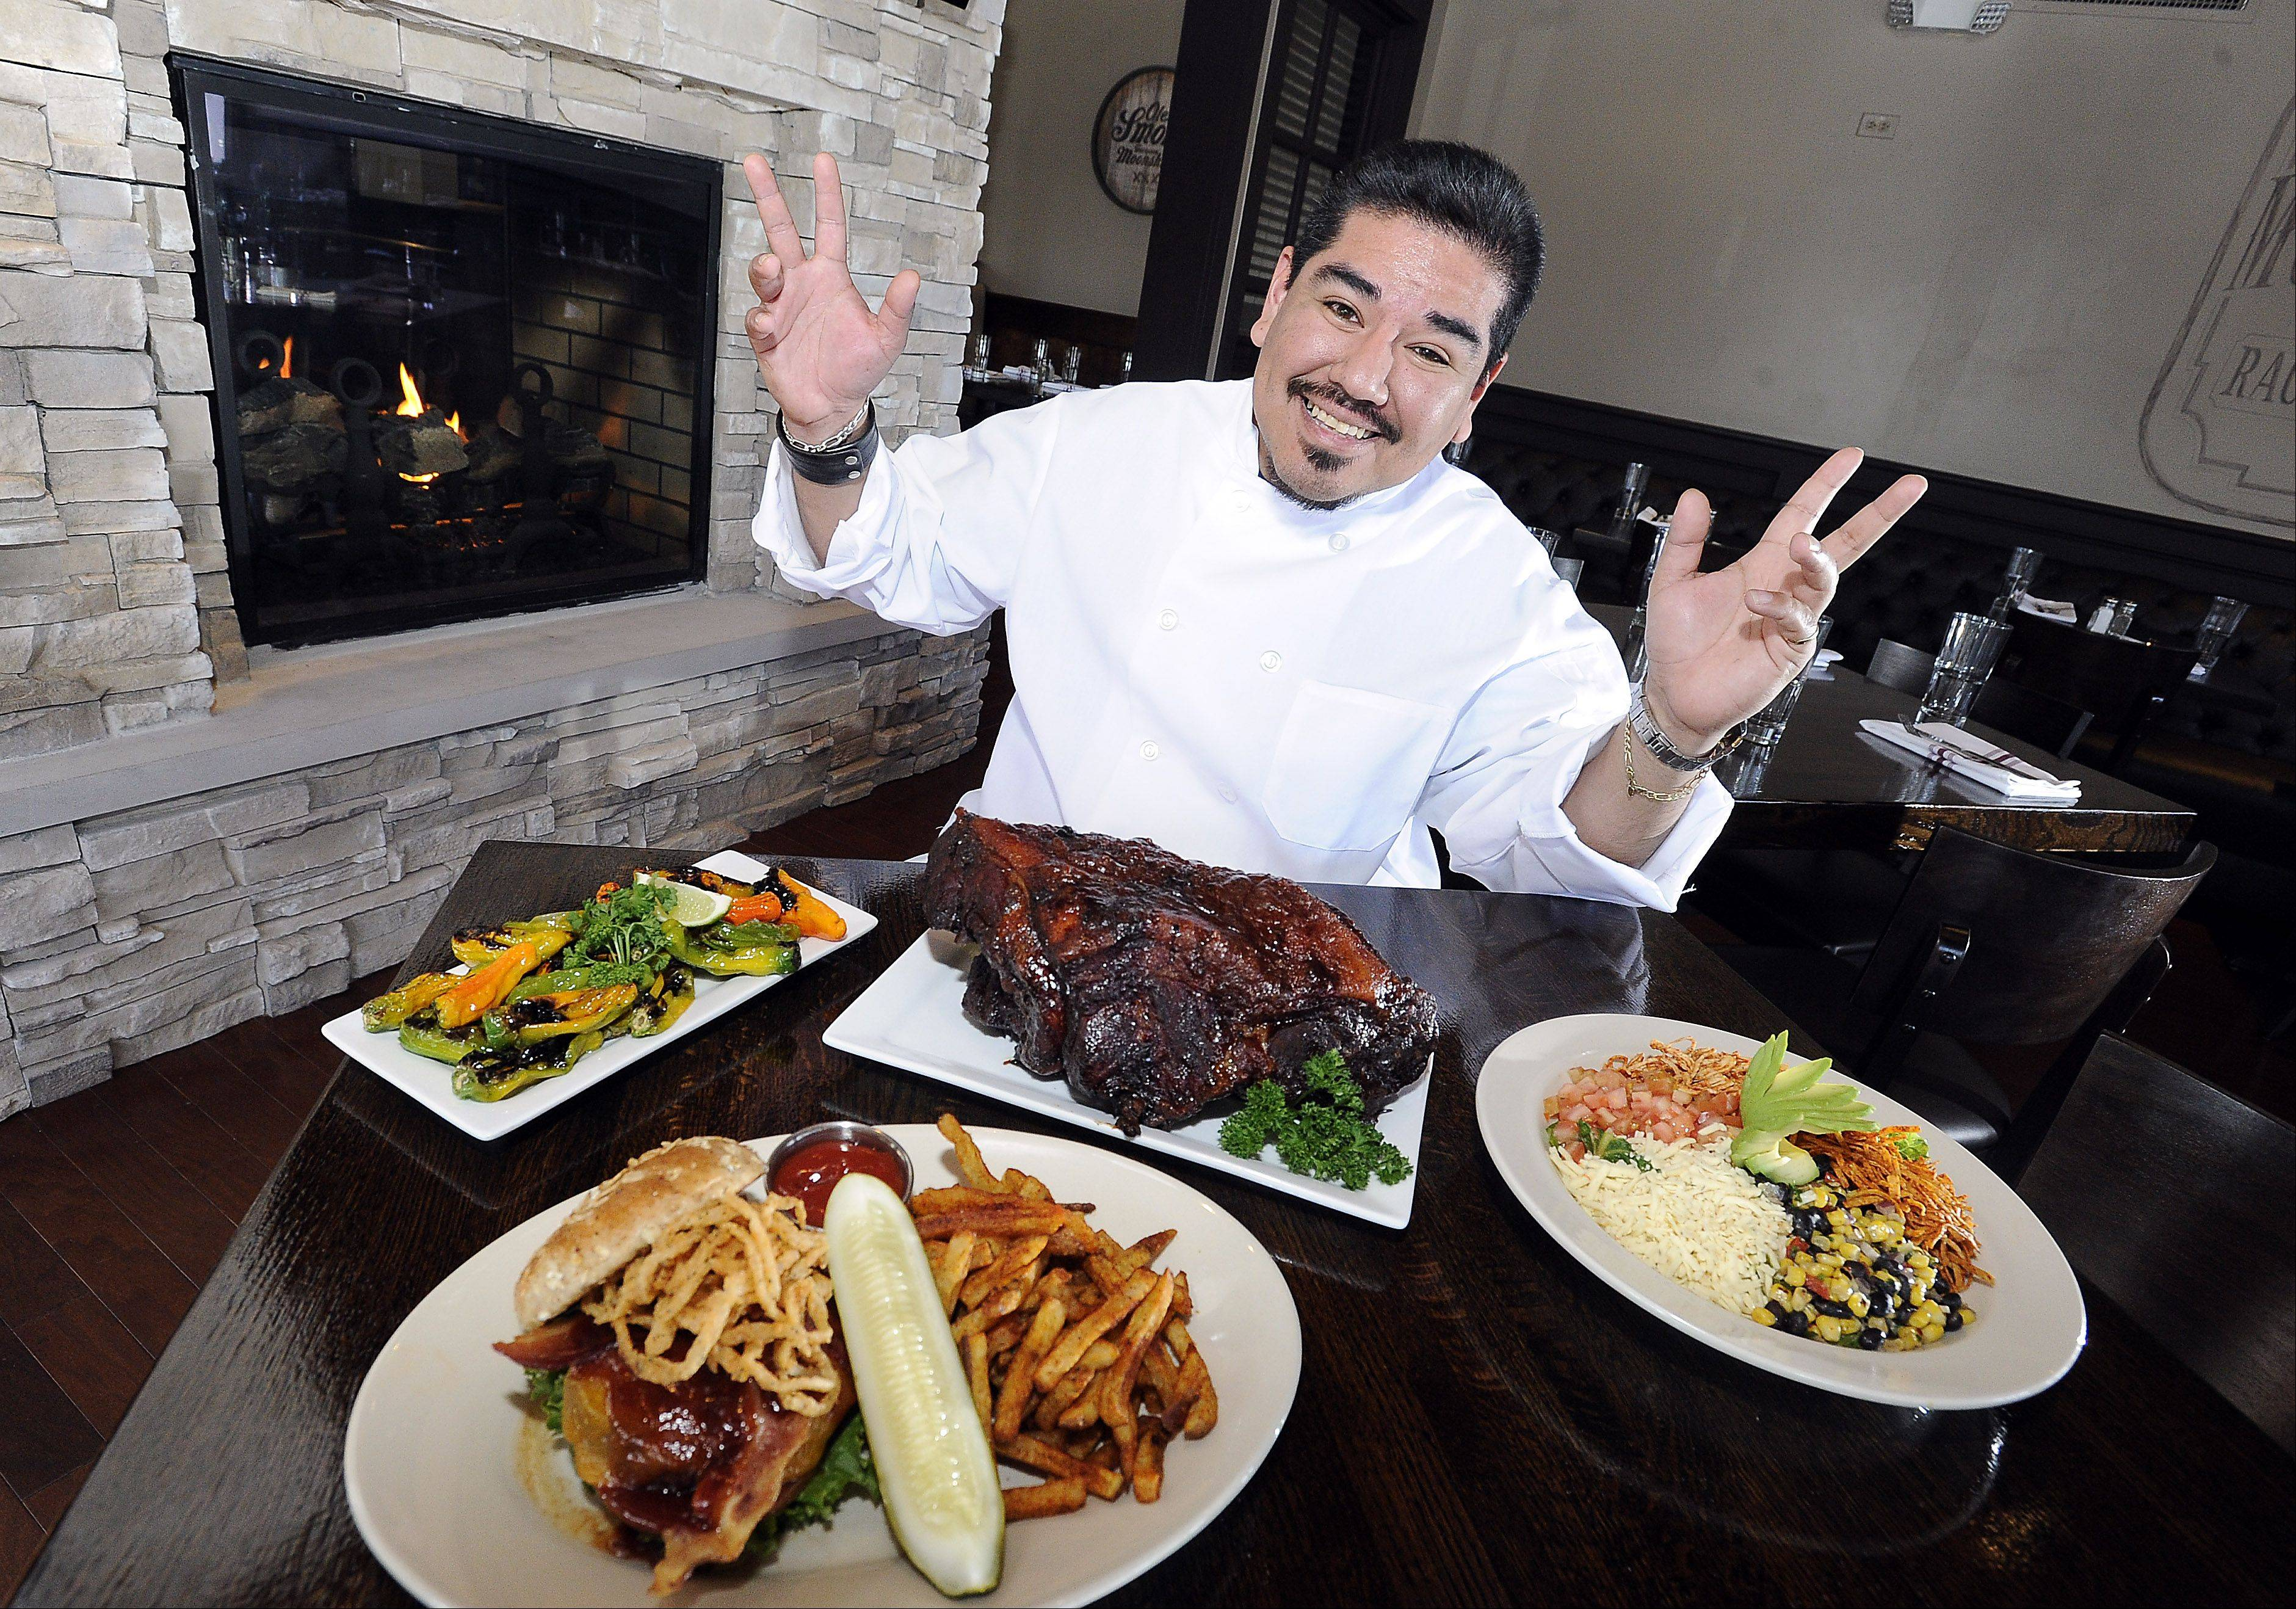 Corporate Chef Nestor Soto shows off some of the dishes he serves up for patrons.